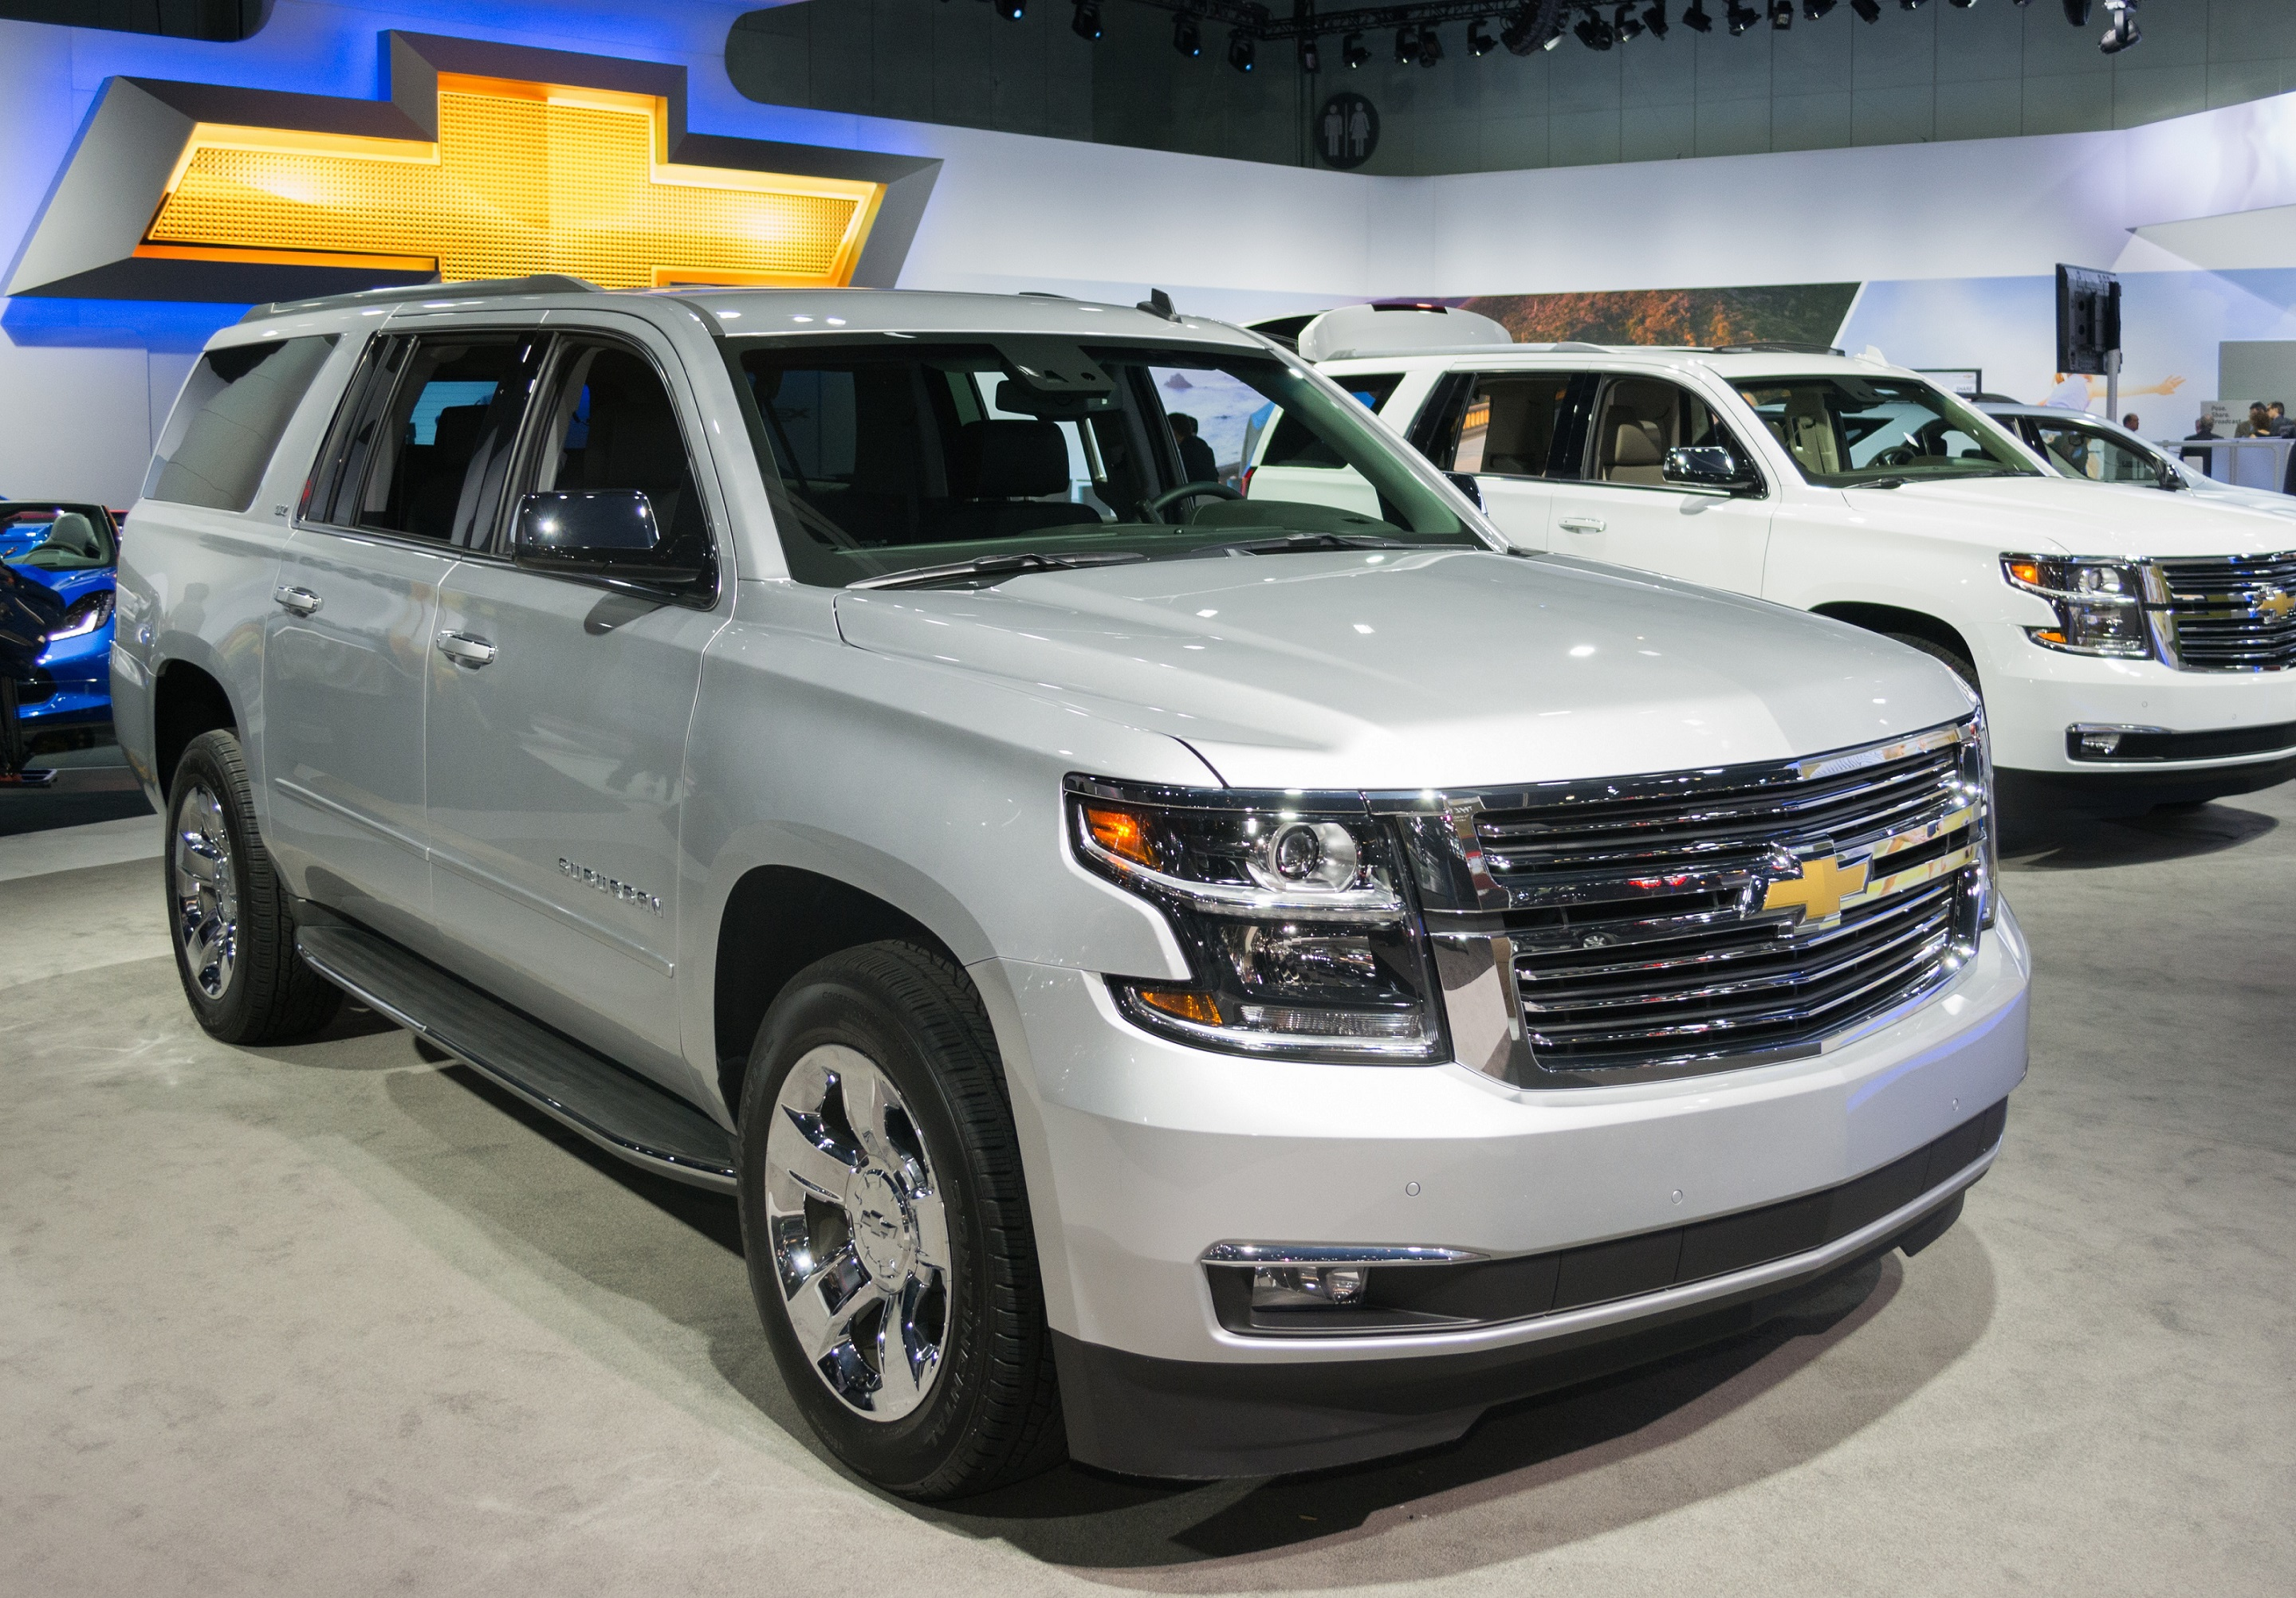 8 Passenger Cars for Sale Near Me Luxury Longest Lasting Vehicles for 2019 8 Suvs 5 American Made